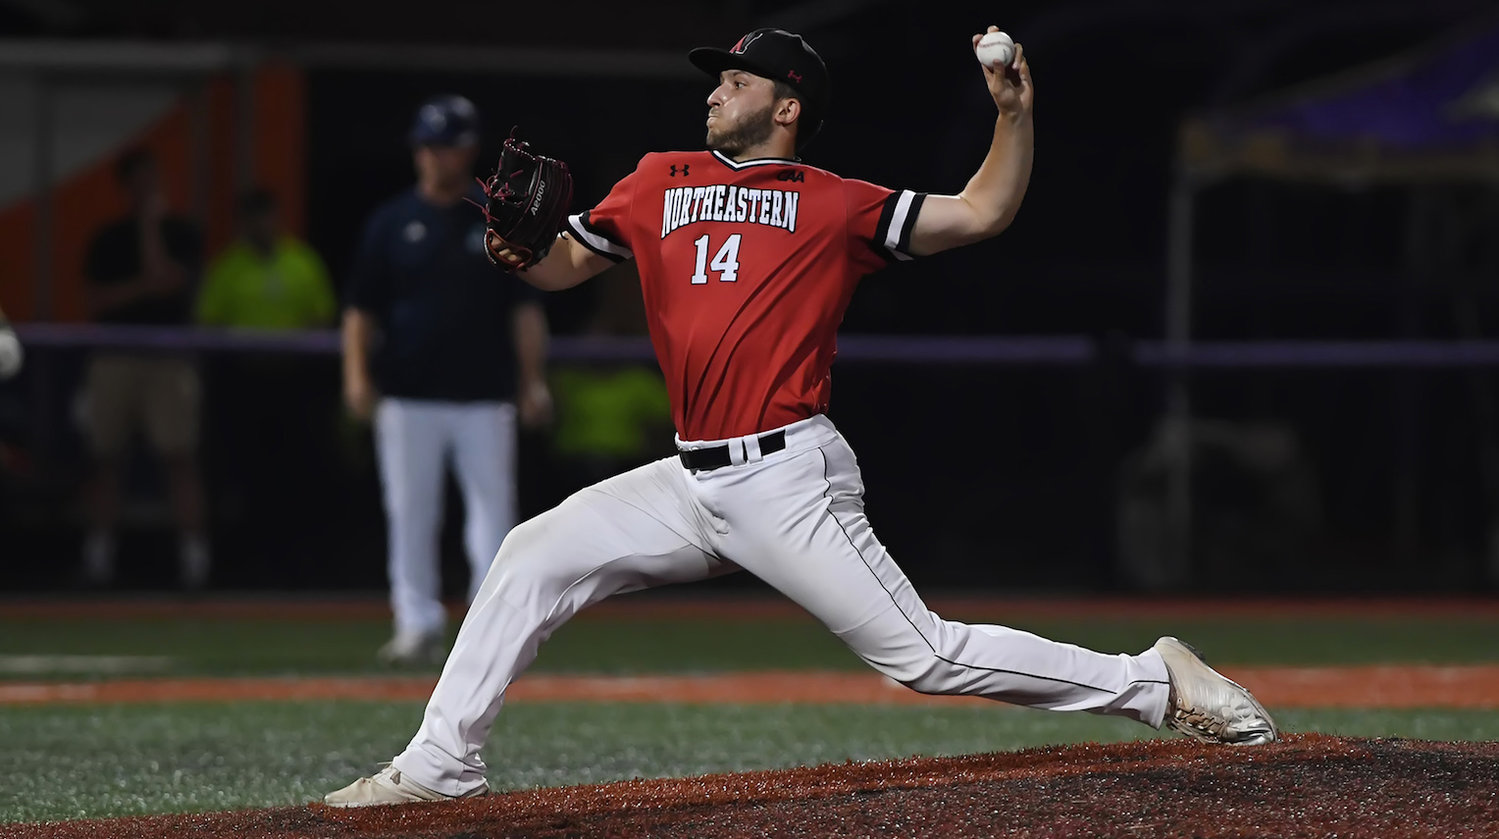 Andrew Misiaszek leaves Northeastern as the program's leader in career saves, with 30.